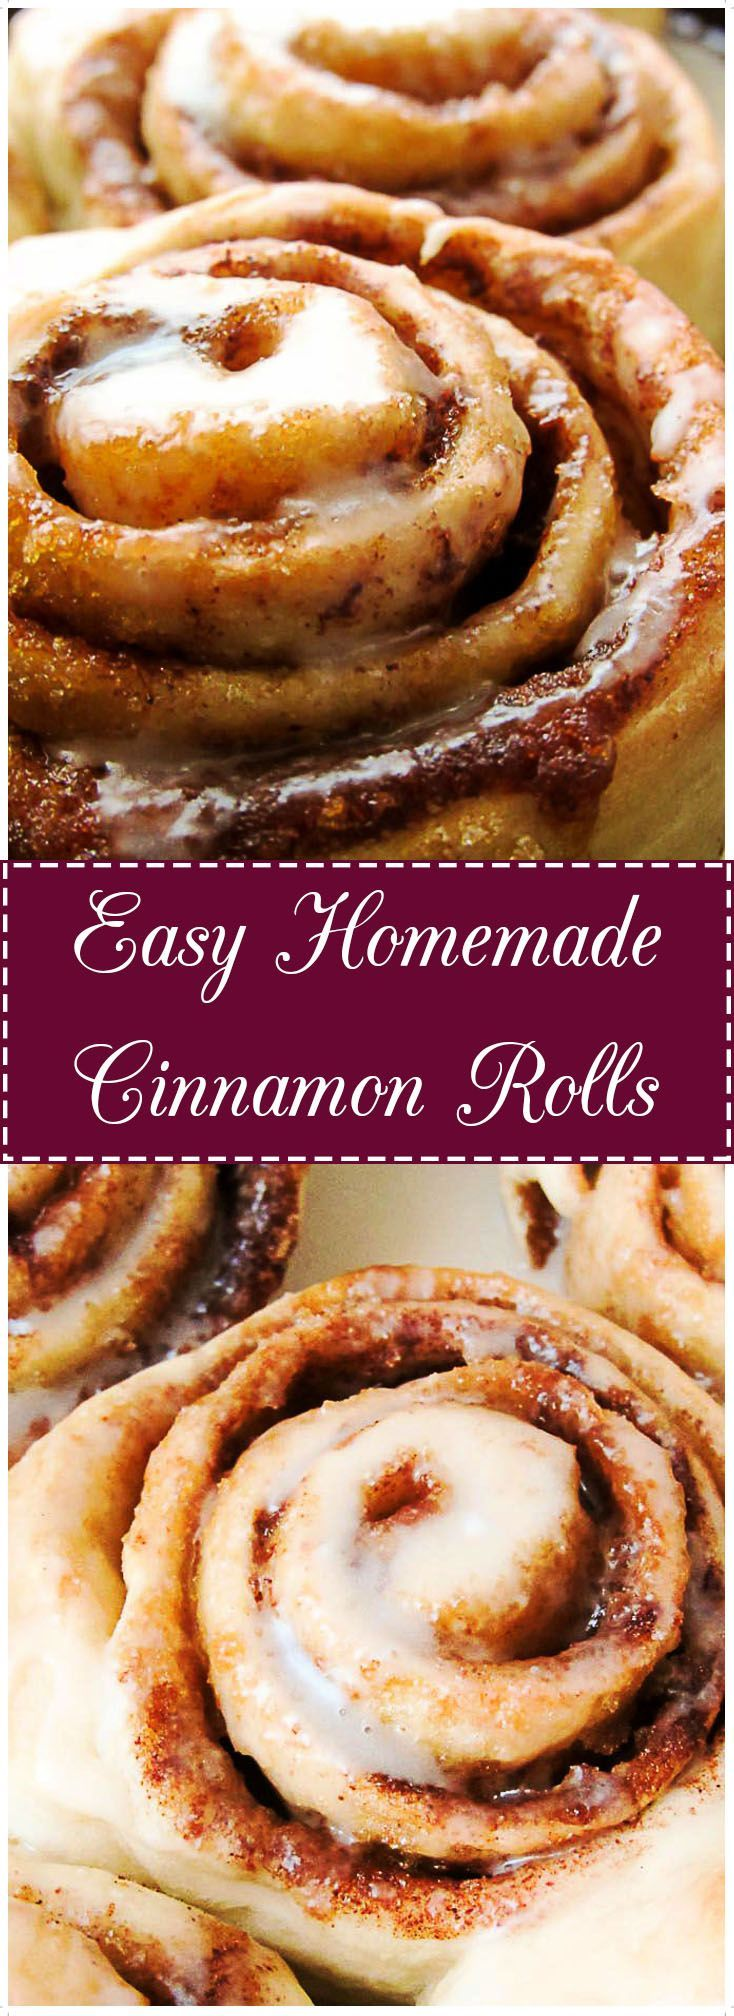 Cinnamon and brown sugar come together in this soft, warm, gooey, breakfast favorite. They're so good, you'll actually look forward to getting out of bed.